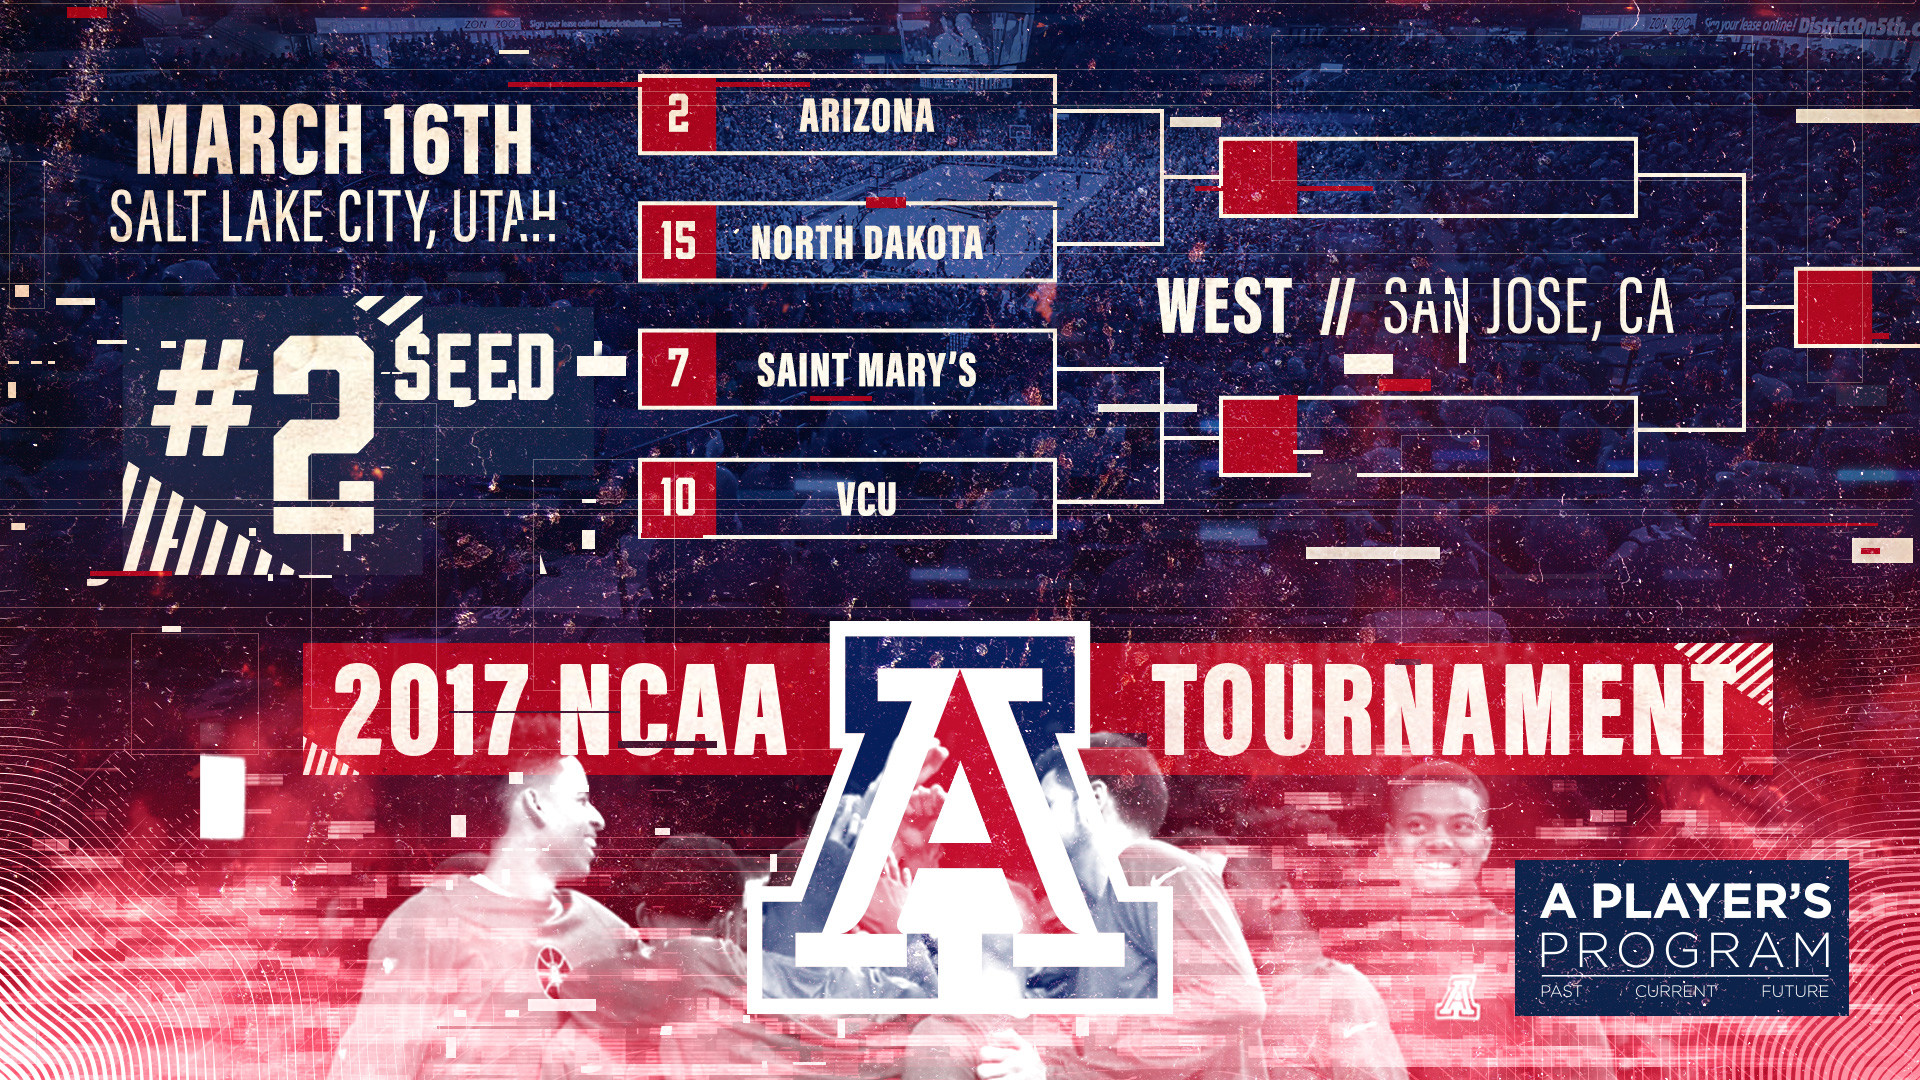 Pac-12 Champion Cats Earn No. 2 Seed in 2017 NCAA Tournament